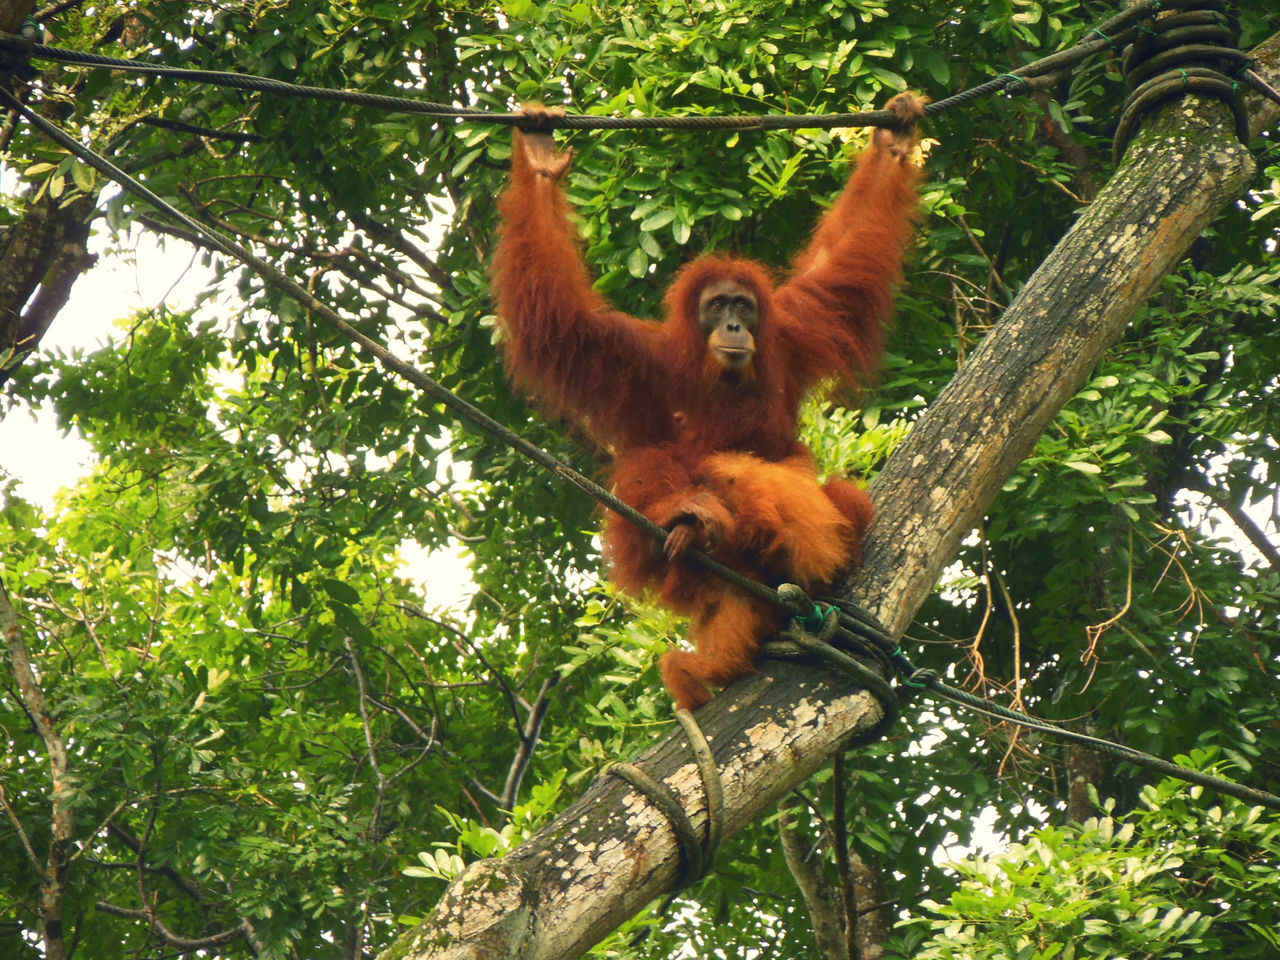 Animal Themes Animal Wildlife Animals In The Wild Baby Orangutan Hang In There Low Angle View Mammal Monkey Orangutan Pongo Pygmaeus Primate Singapore Zoological Garden Tropical Forest Young Animal